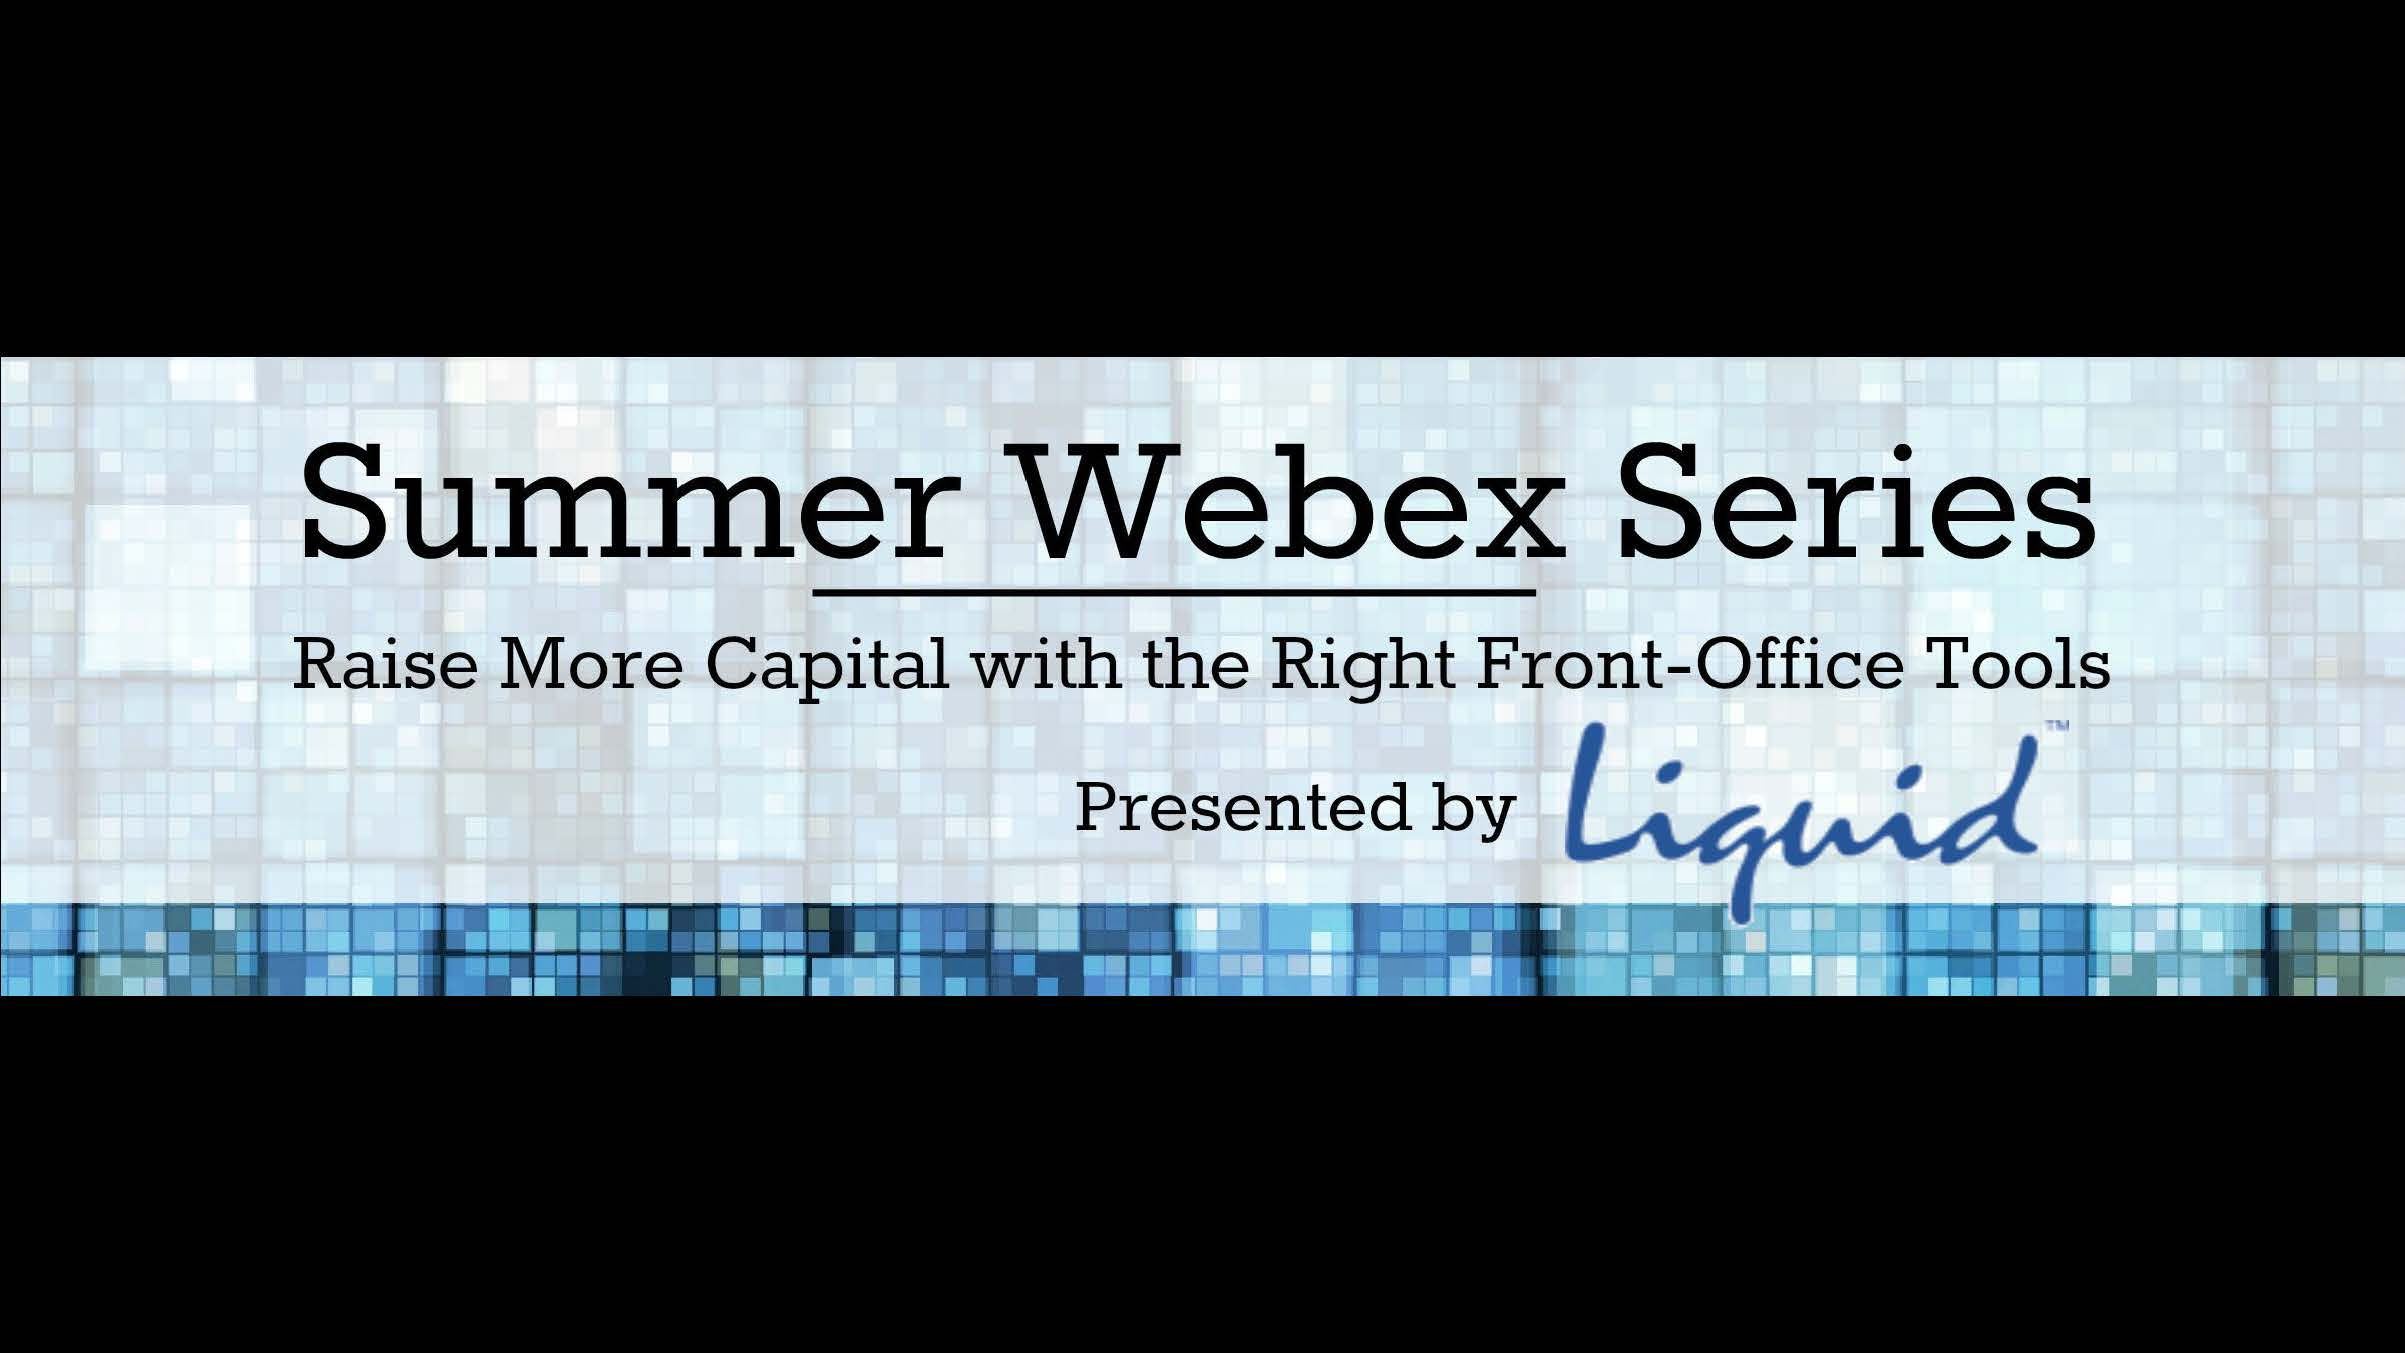 Webex for Hedge Fund Managers: July 23rd @ 2 PM EST